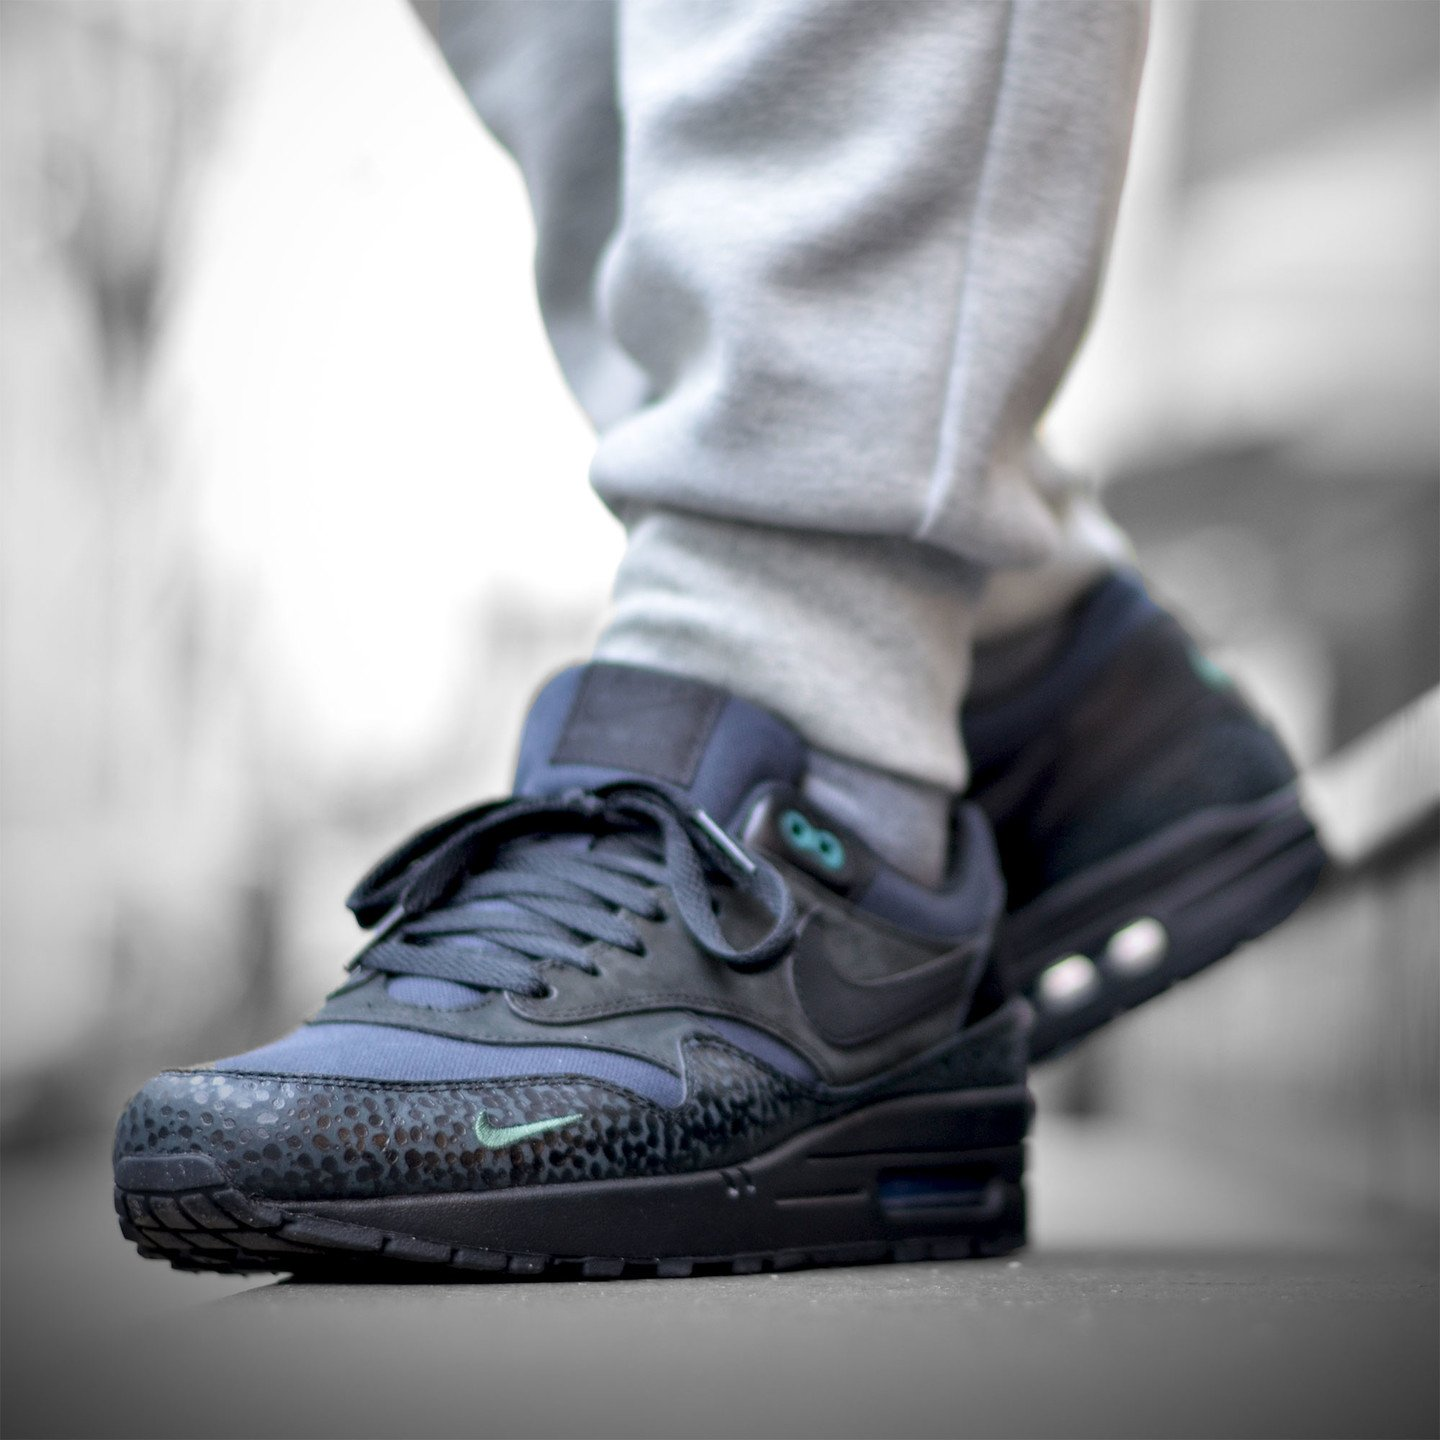 Nike Air Max 1 Premium 'Bonsai Safari' Black / Black / Bonsai 512033-030-45